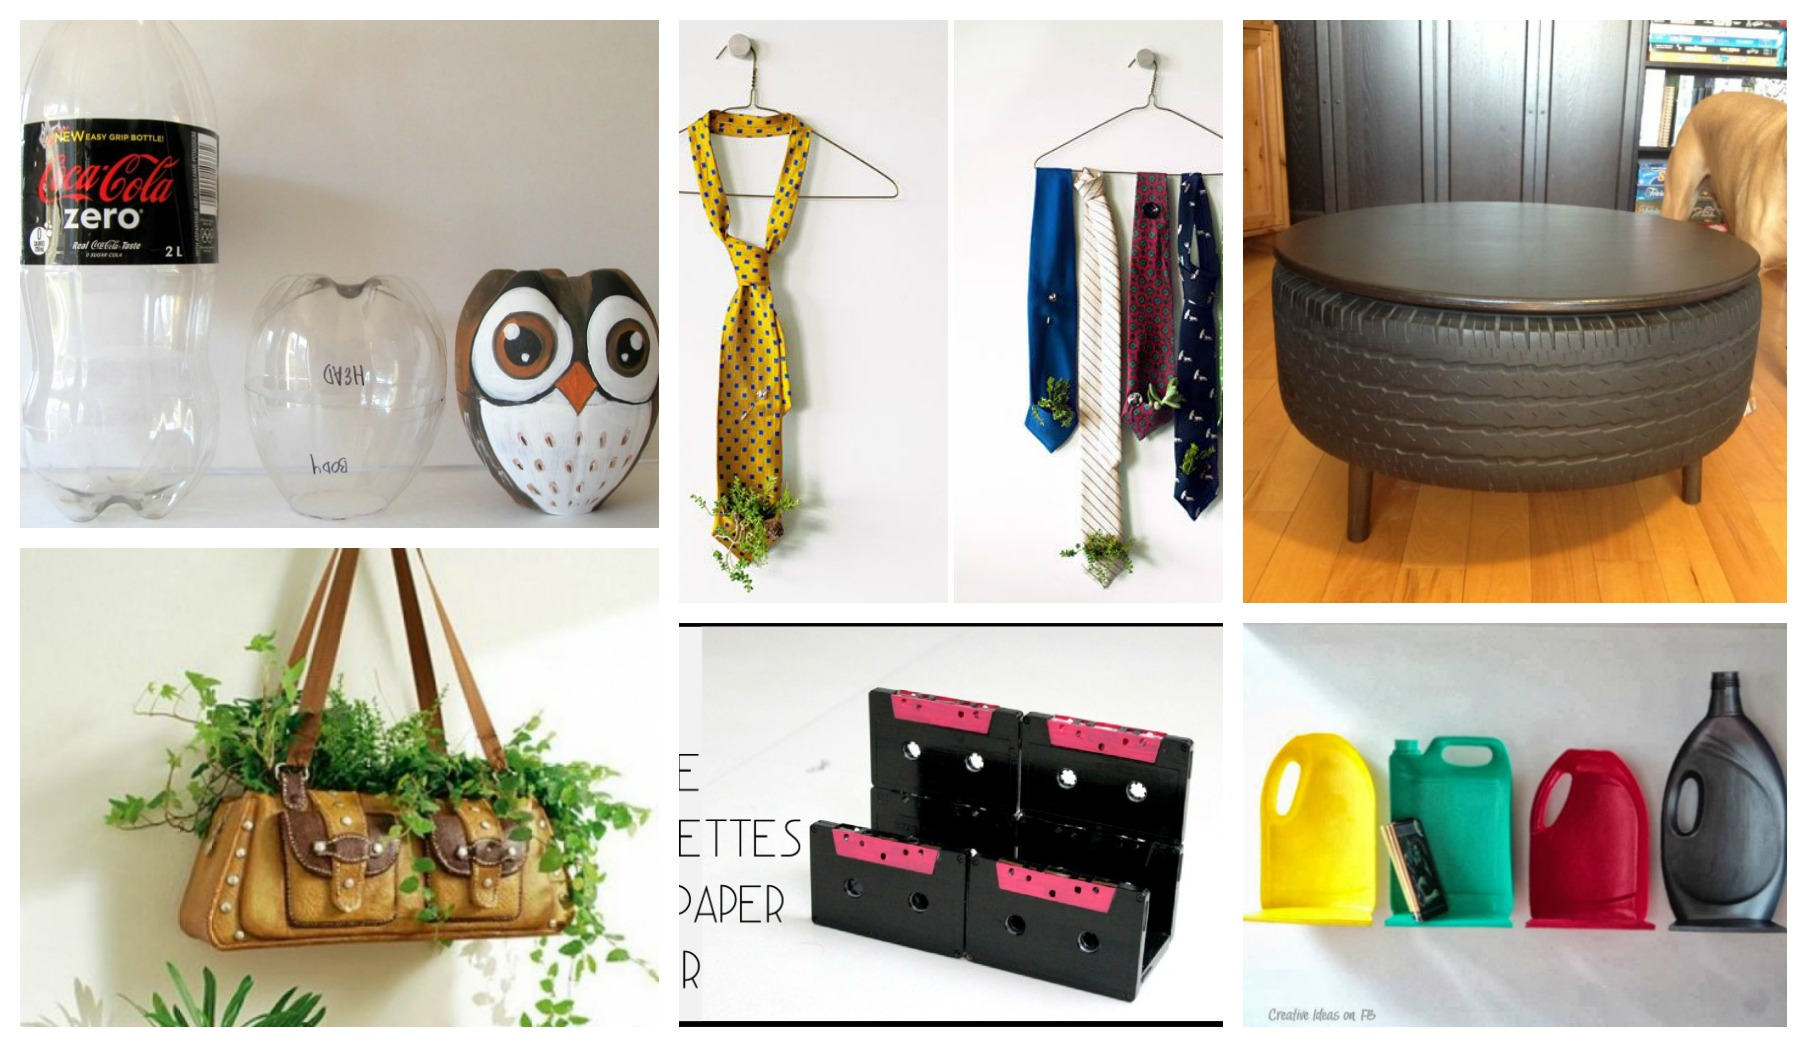 Creative Diy Projects That Recycle Old Items Into New